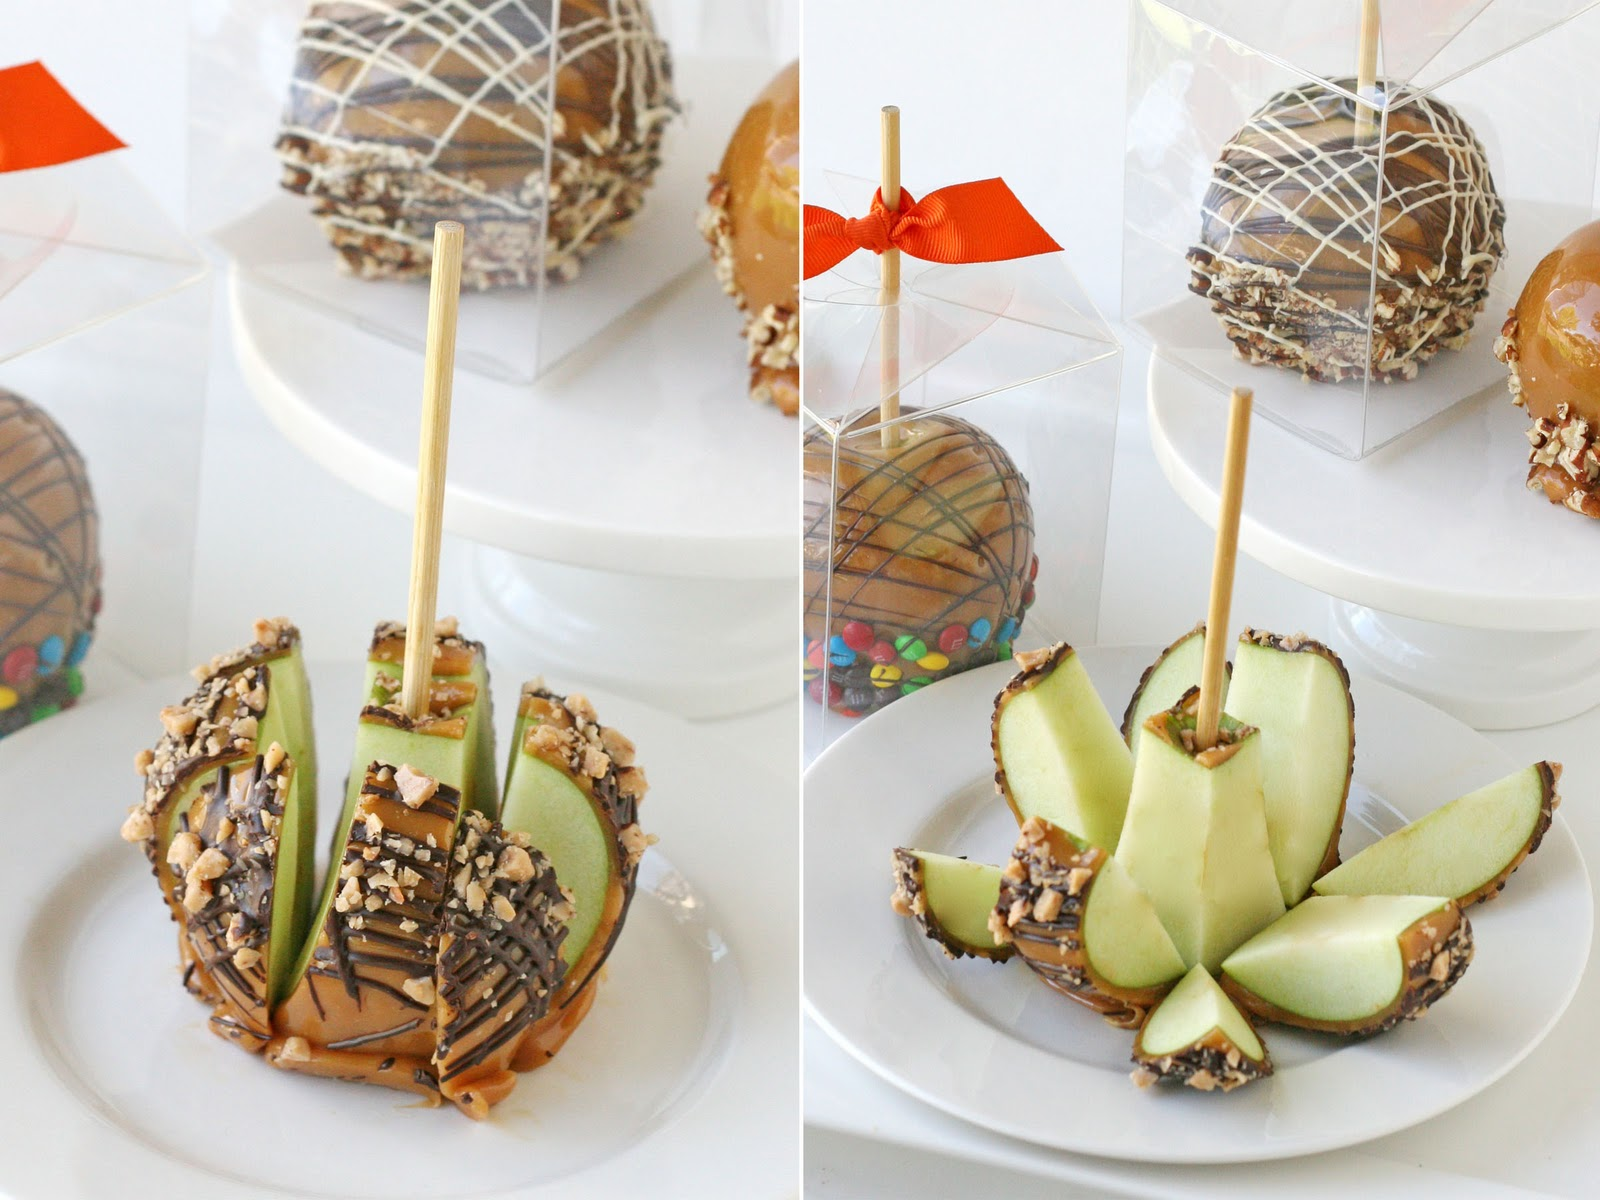 How to Make Gourmet Caramel Apples – Glorious Treats